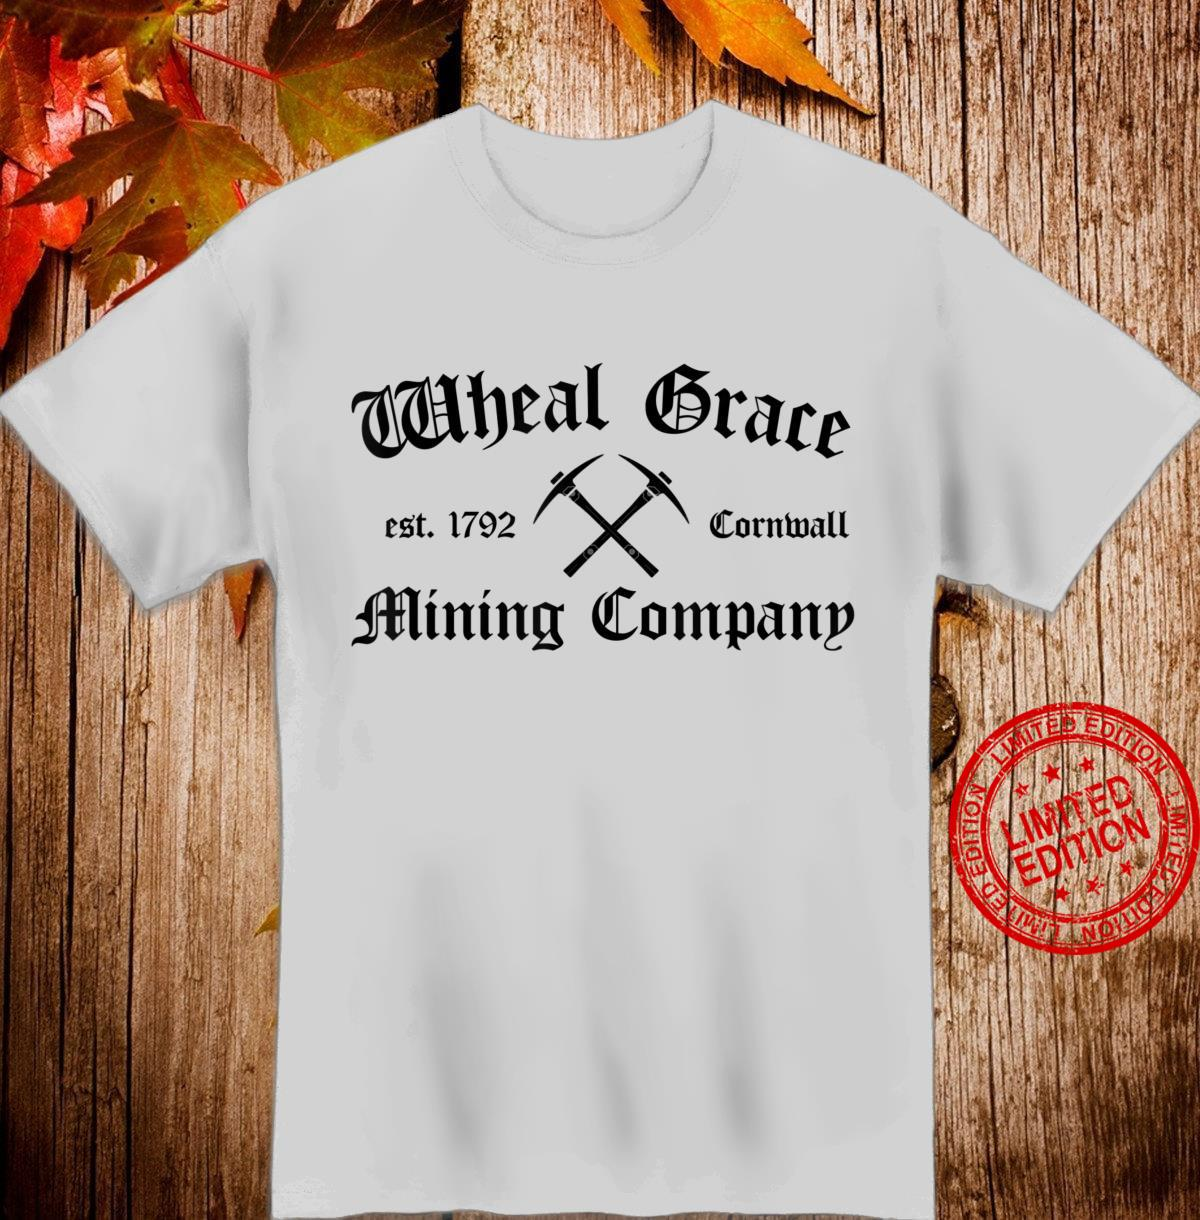 Wheal Grace Poldark Cornwall Mining Company Leisure Shirt